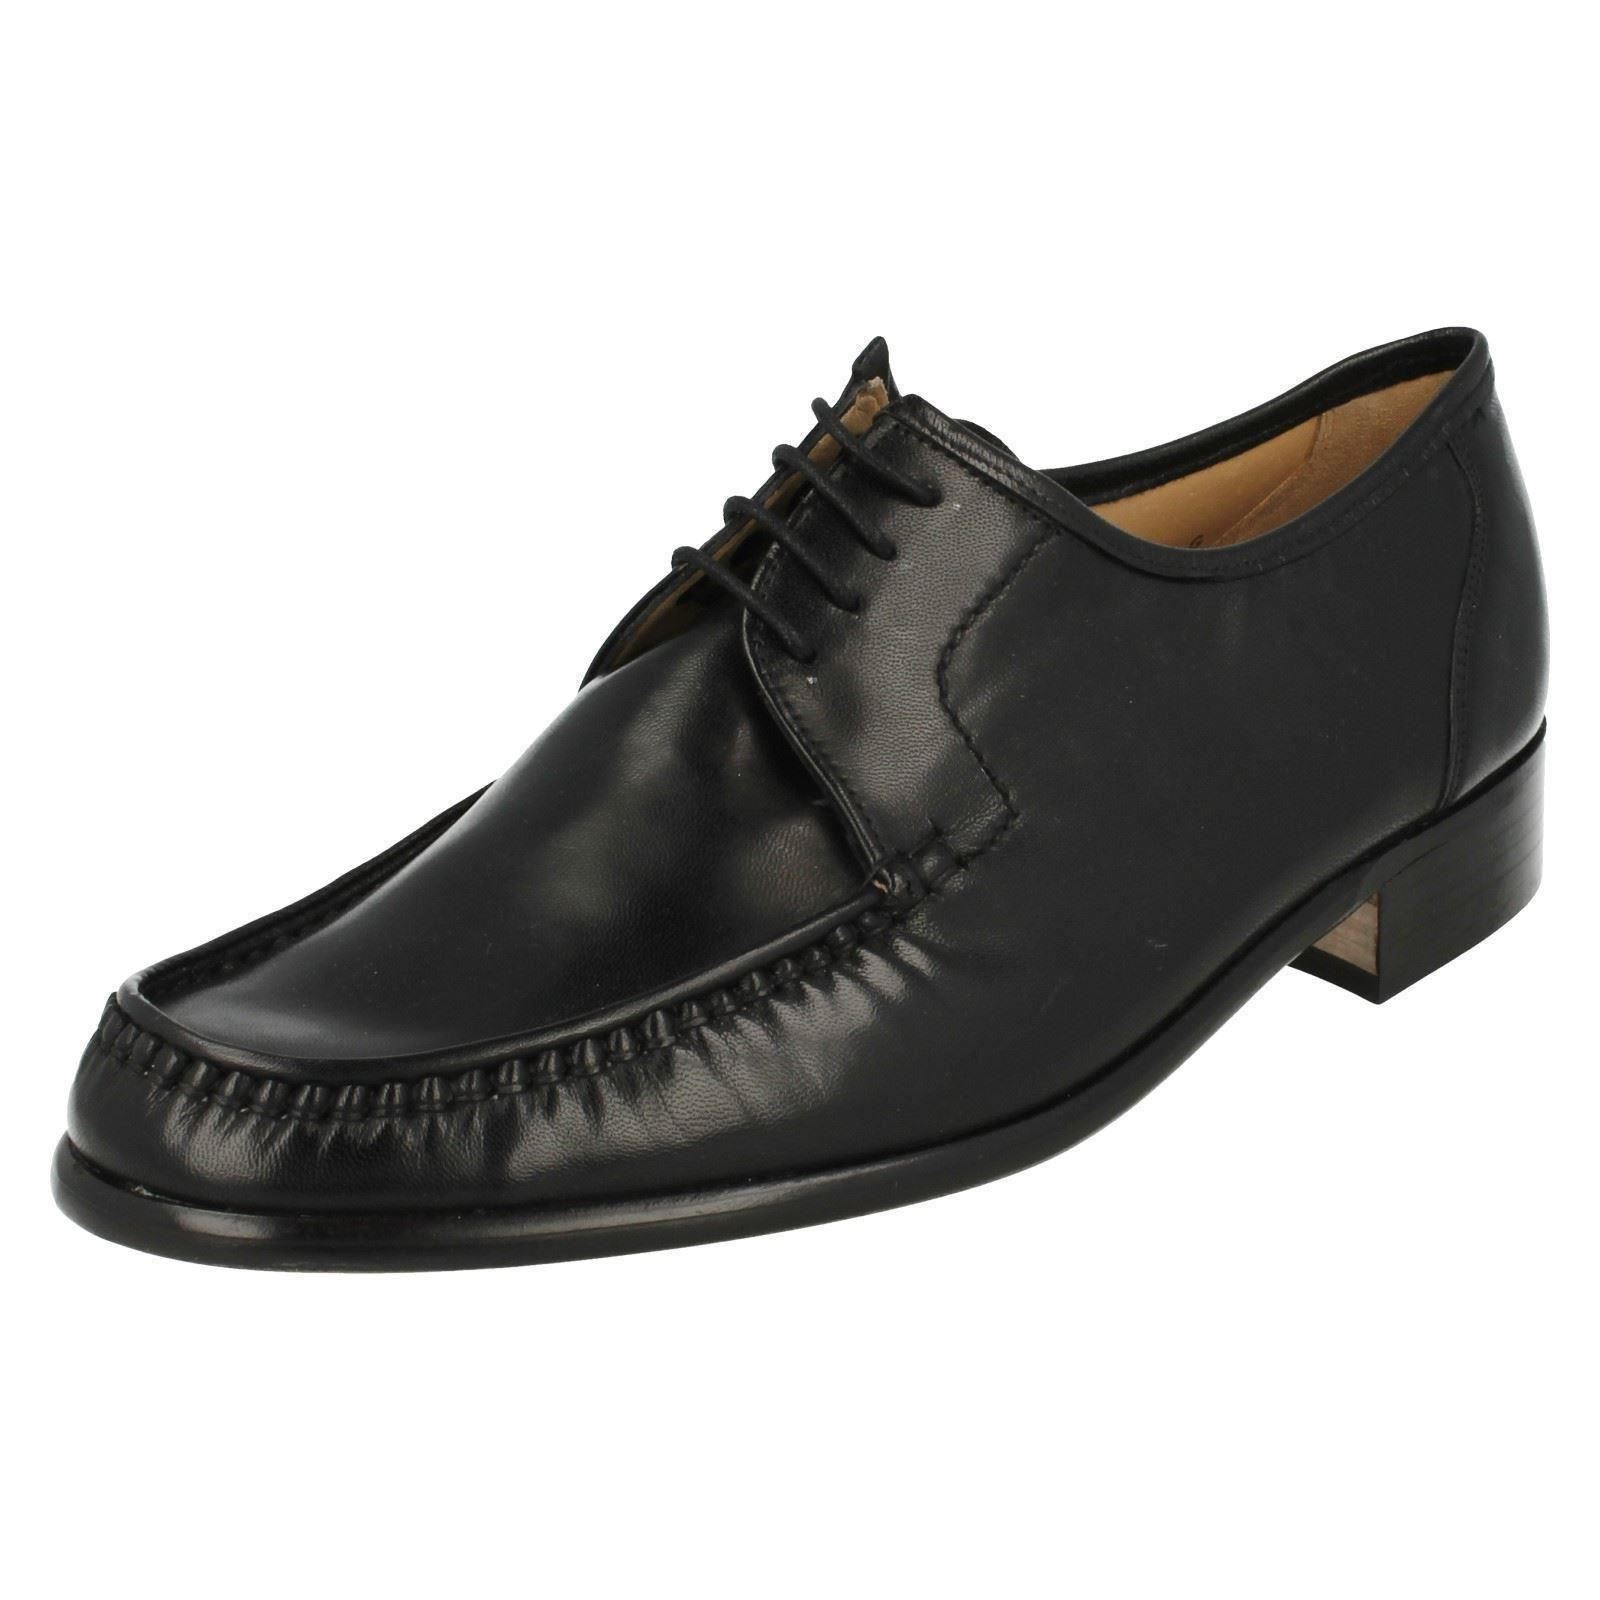 Herren Smart/Formal Grenson Rounded Lace Up Smart/Formal Herren Leder Heeled Moccasin Schuhes Crewe 952791